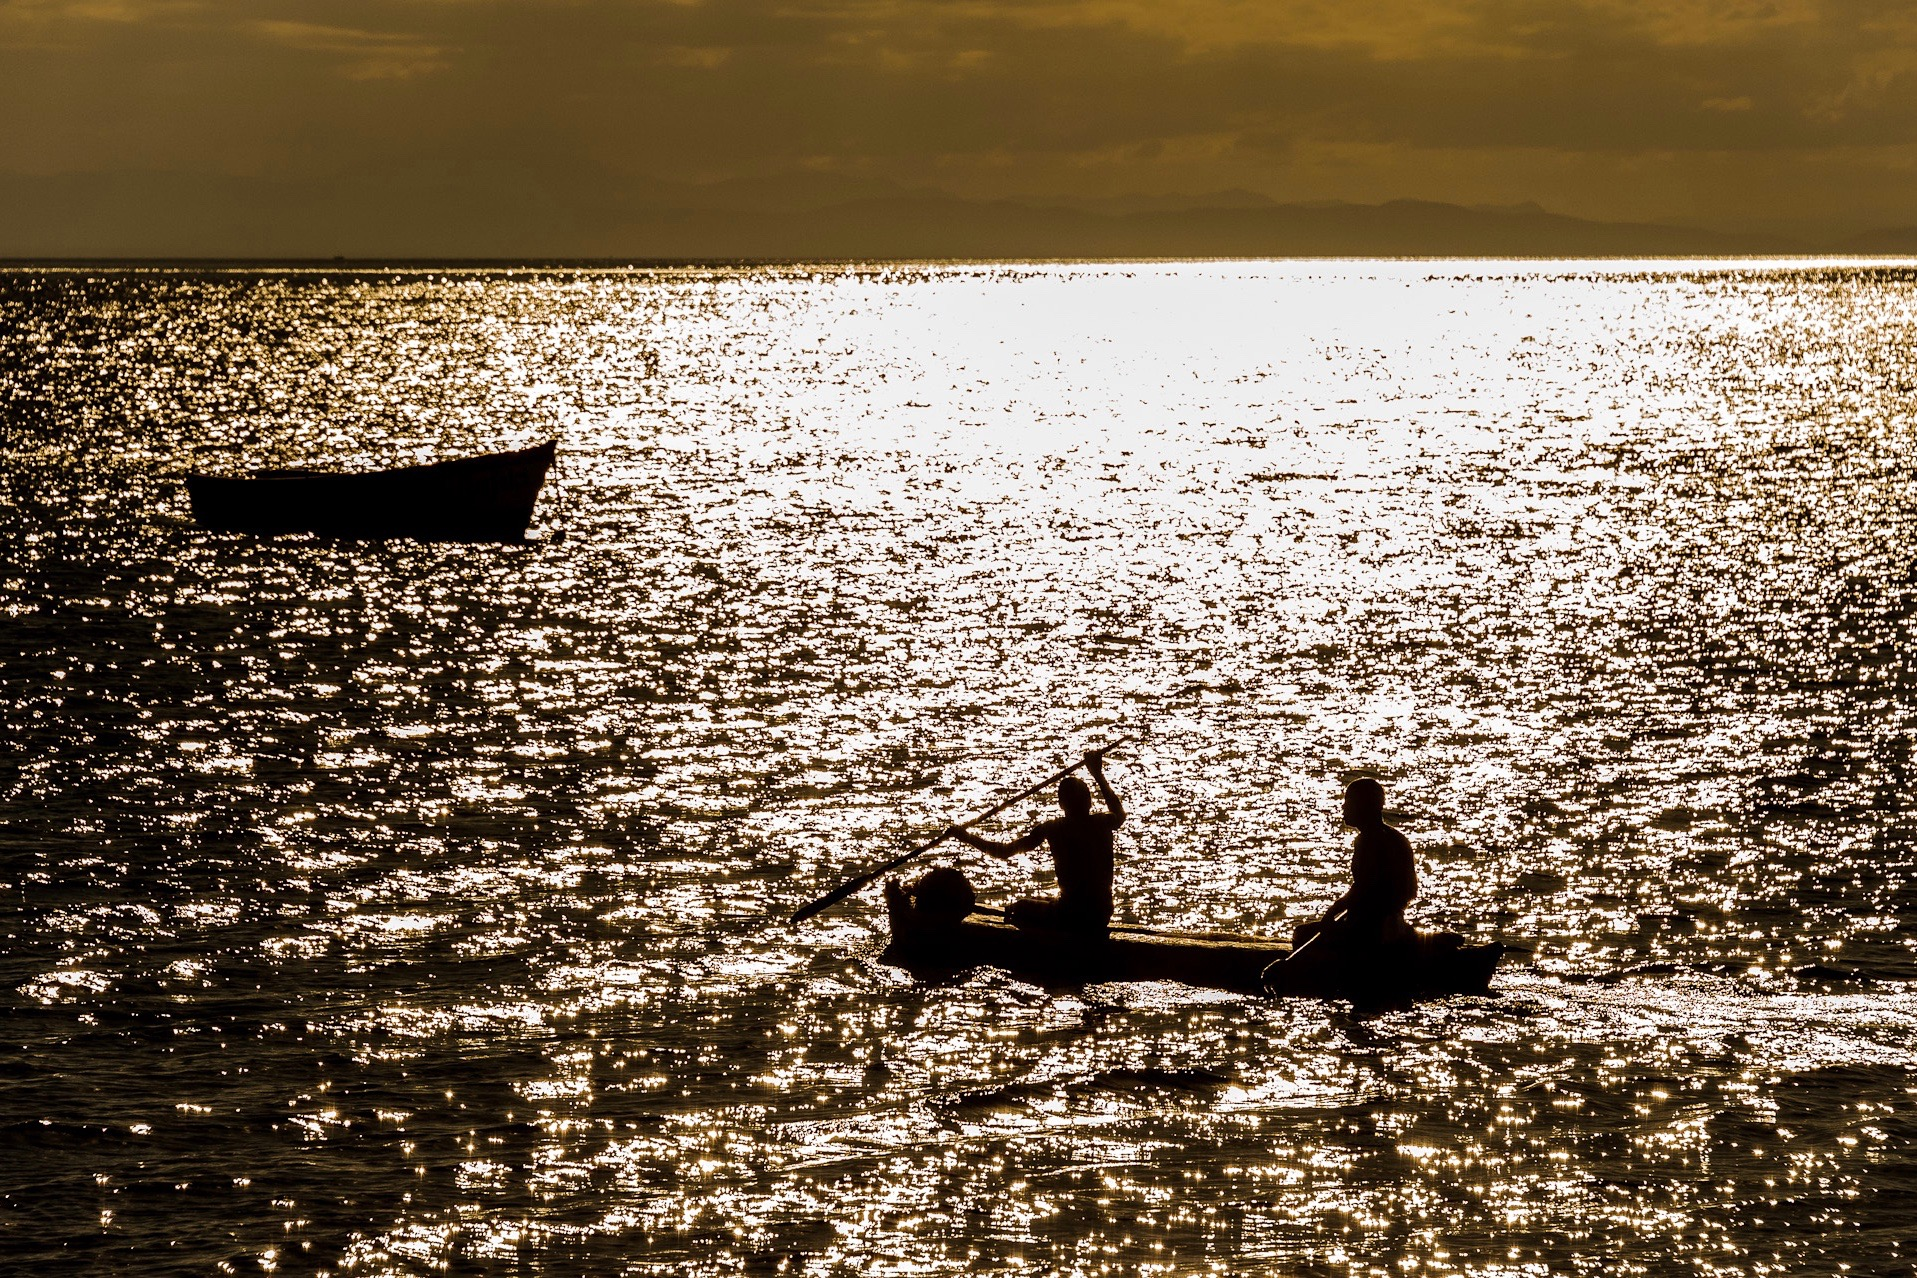 Photo © Danforth Lodge | Early morning fisherman on Lake Malawi